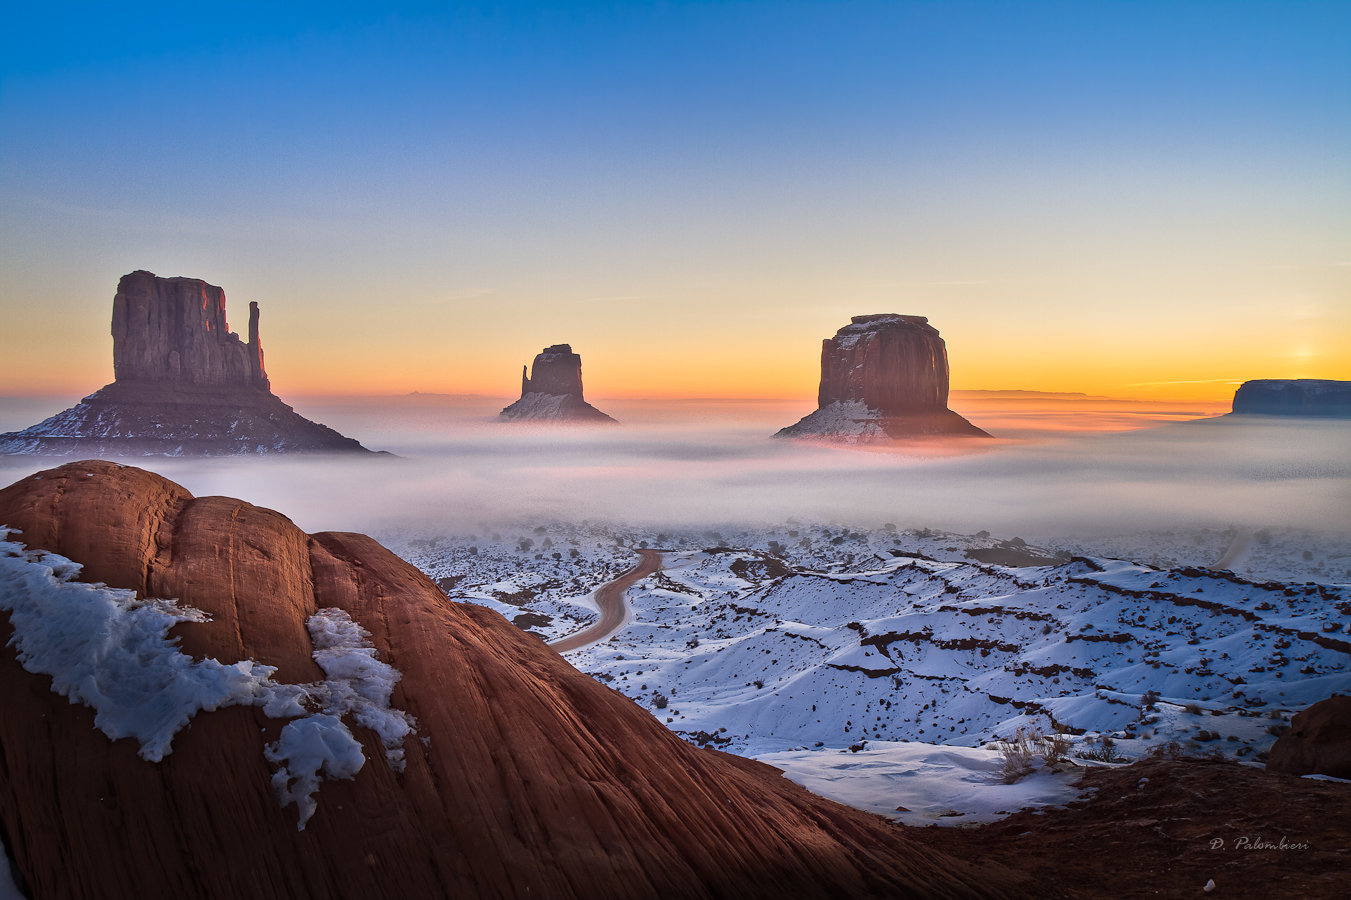 Photograph Sunrise in Monument Valley - Arizona by Dominique  Palombieri on 500px